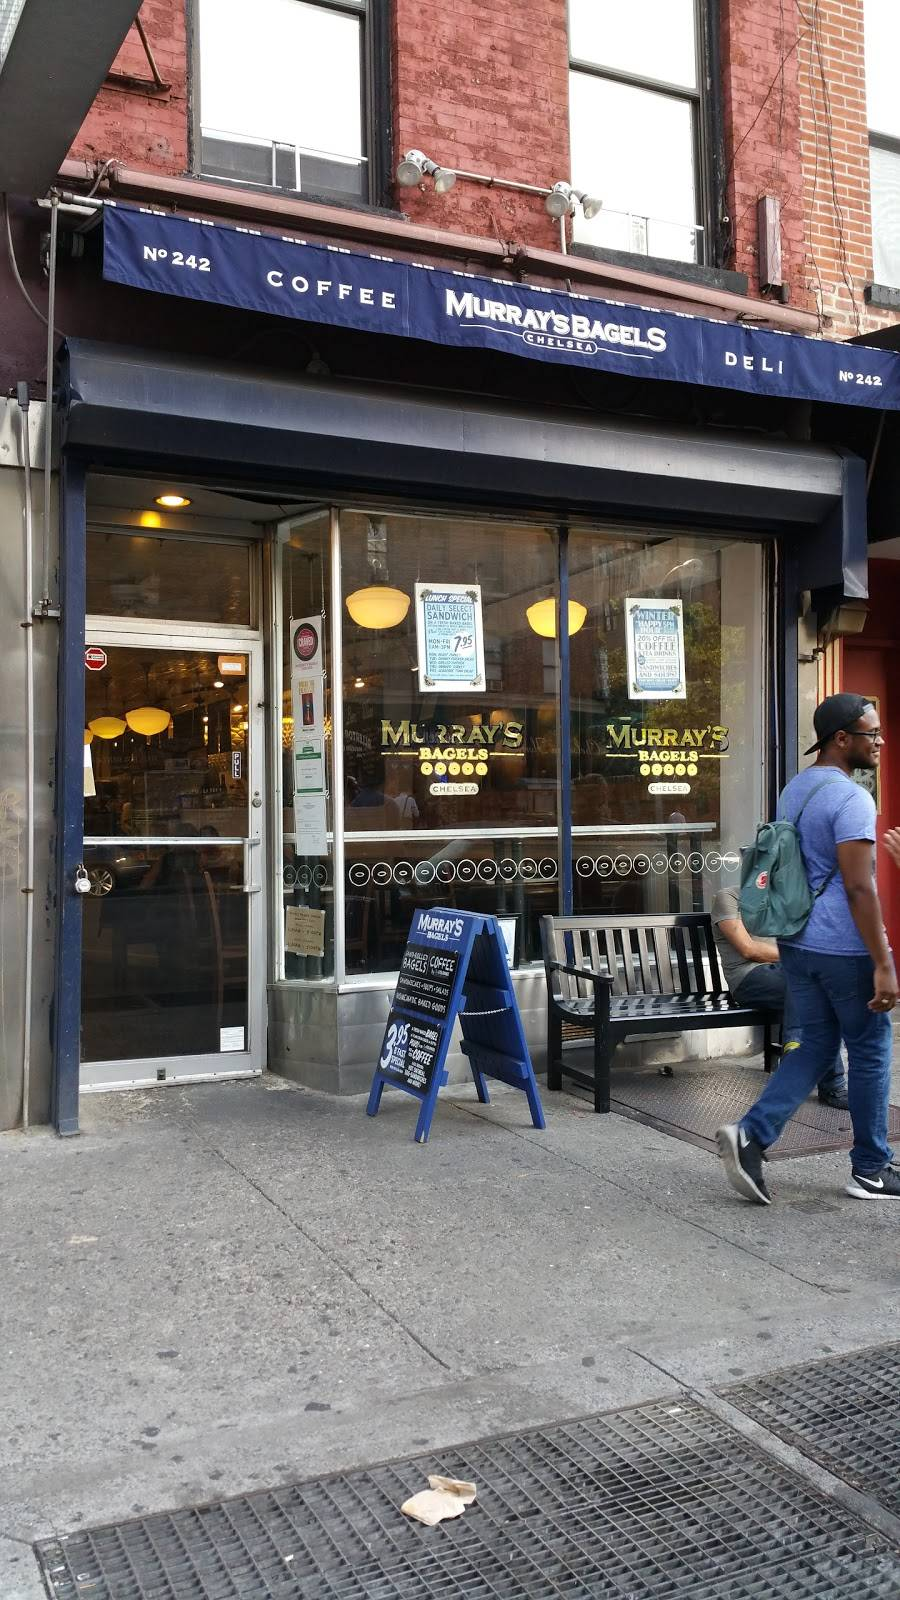 Murrays Bagels | cafe | 242 8th Ave, New York, NY 10011, USA | 6466381335 OR +1 646-638-1335